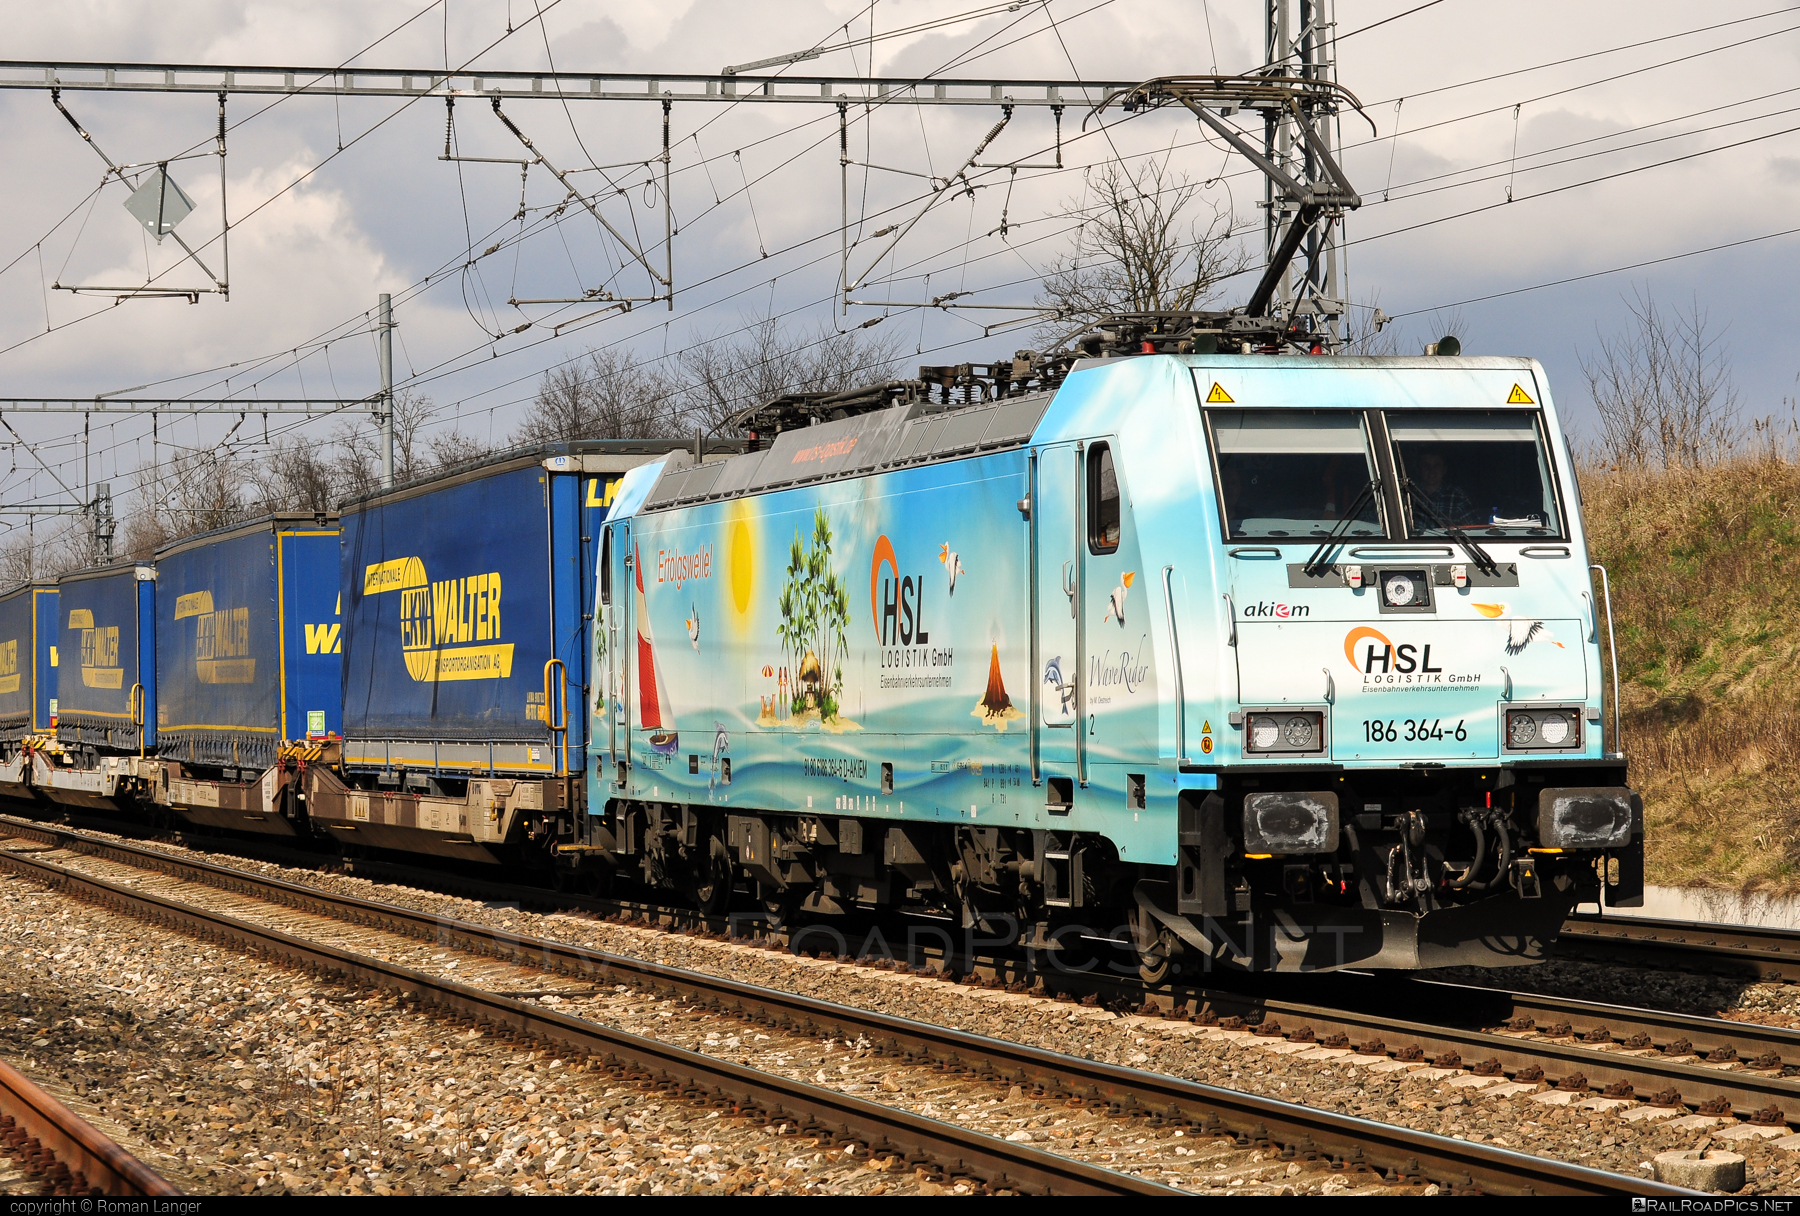 Bombardier TRAXX F140 MS - 186 364-6 operated by LOKORAIL, a.s. #akiem #akiemsas #bombardier #bombardiertraxx #flatwagon #hsl #lokorail #lrl #traxx #traxxf140 #traxxf140ms #waverider